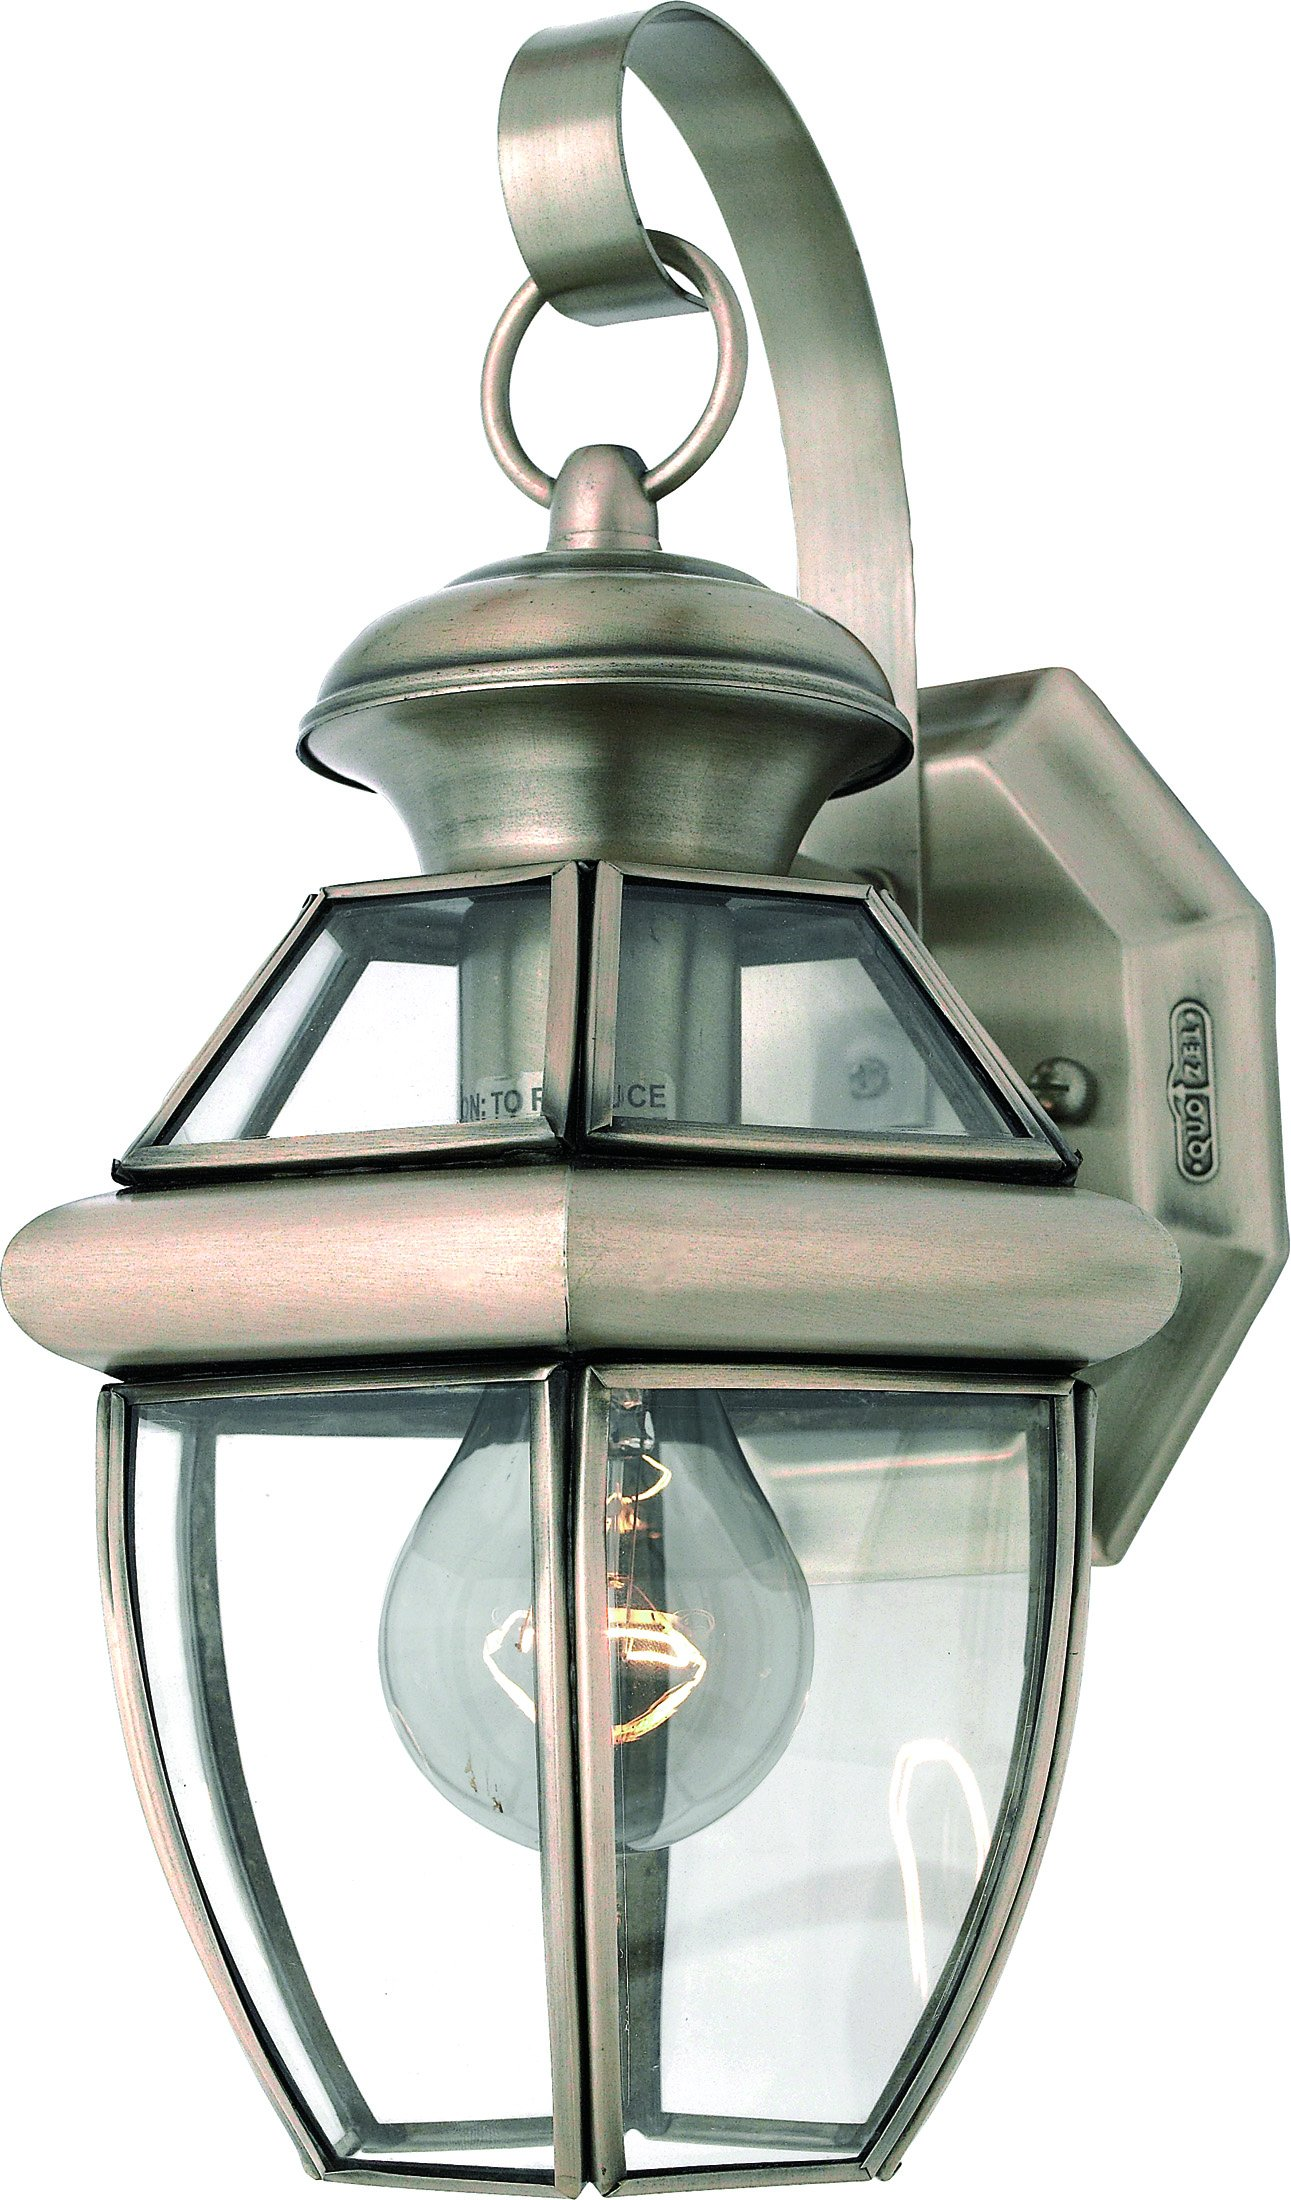 Luxury Colonial Outdoor Wall Light, Small Size: 11.5'' H x 7'' W, with Tudor Style Elements, Versatile Design, Classy Aged Silver Finish and Beveled Glass, UQL1141 by Urban Ambiance